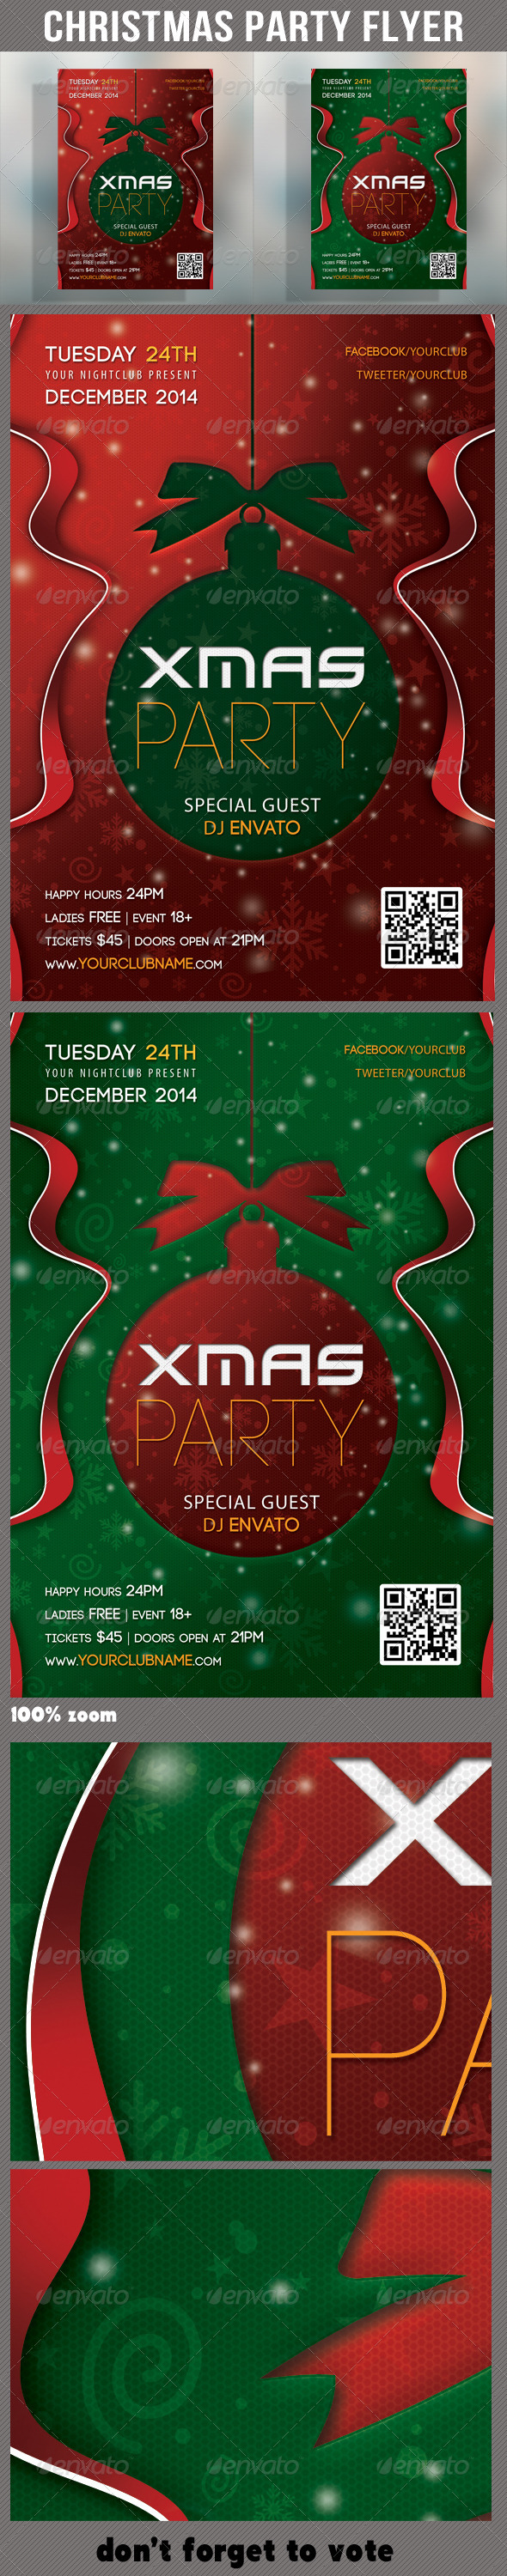 Merry Christmas Party Flyer 02